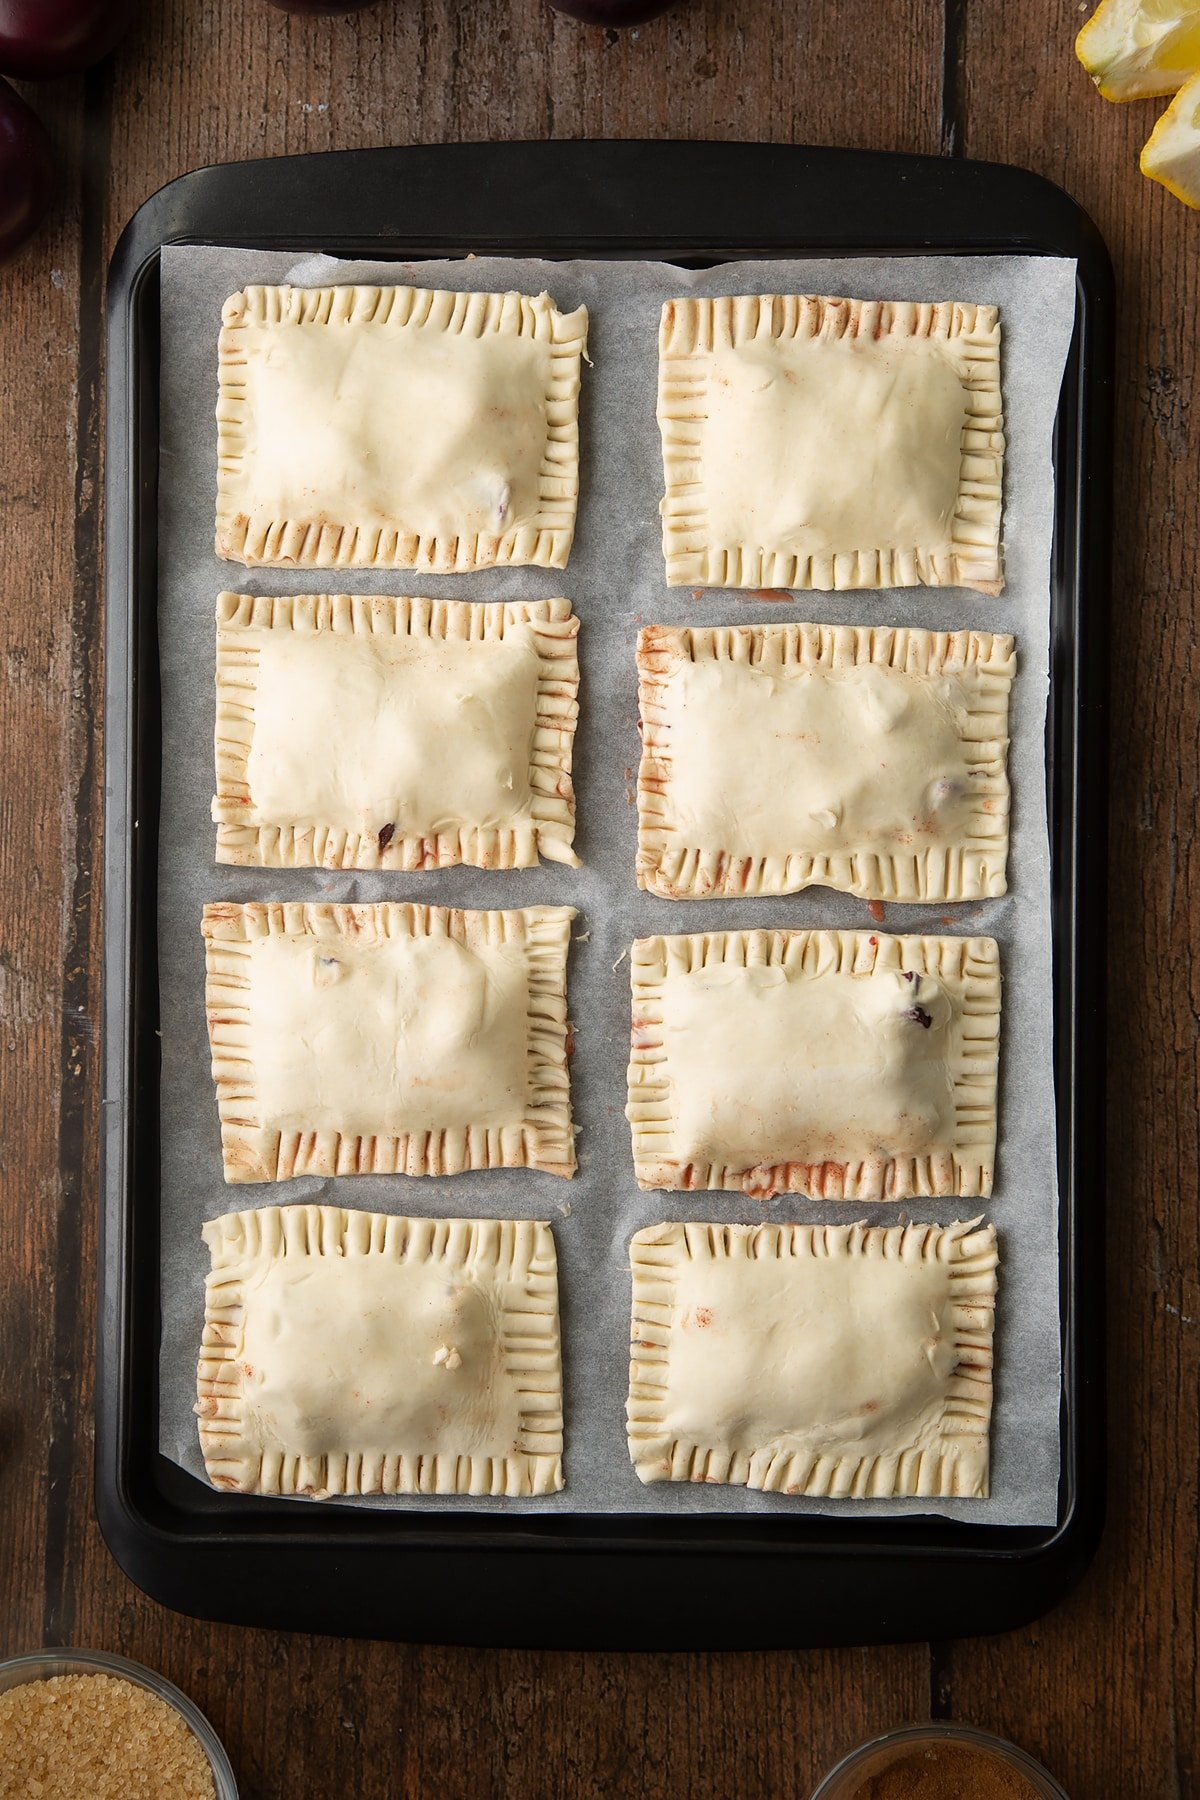 Puff pastry parcels on a baking paper lined tray. The edges are crimped with a fork and trimmed. Ingredients to make a plum pastry recipe surround the tray.